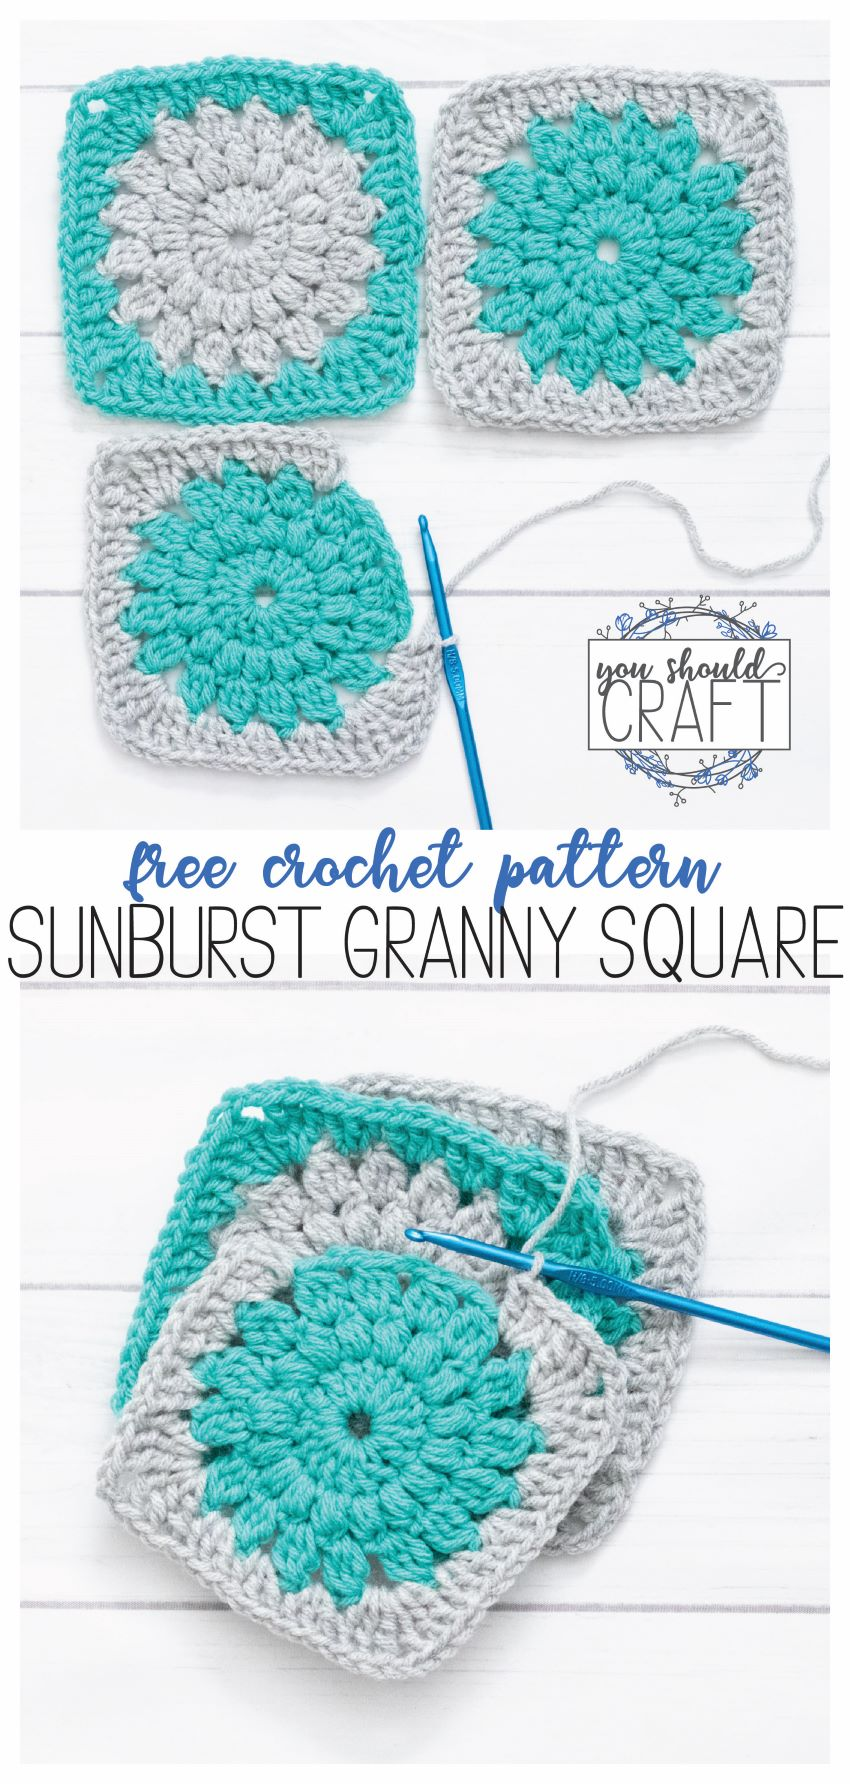 """collage of two sunburst granny square images with the text """"Free crochet pattern: sunburst granny square"""""""